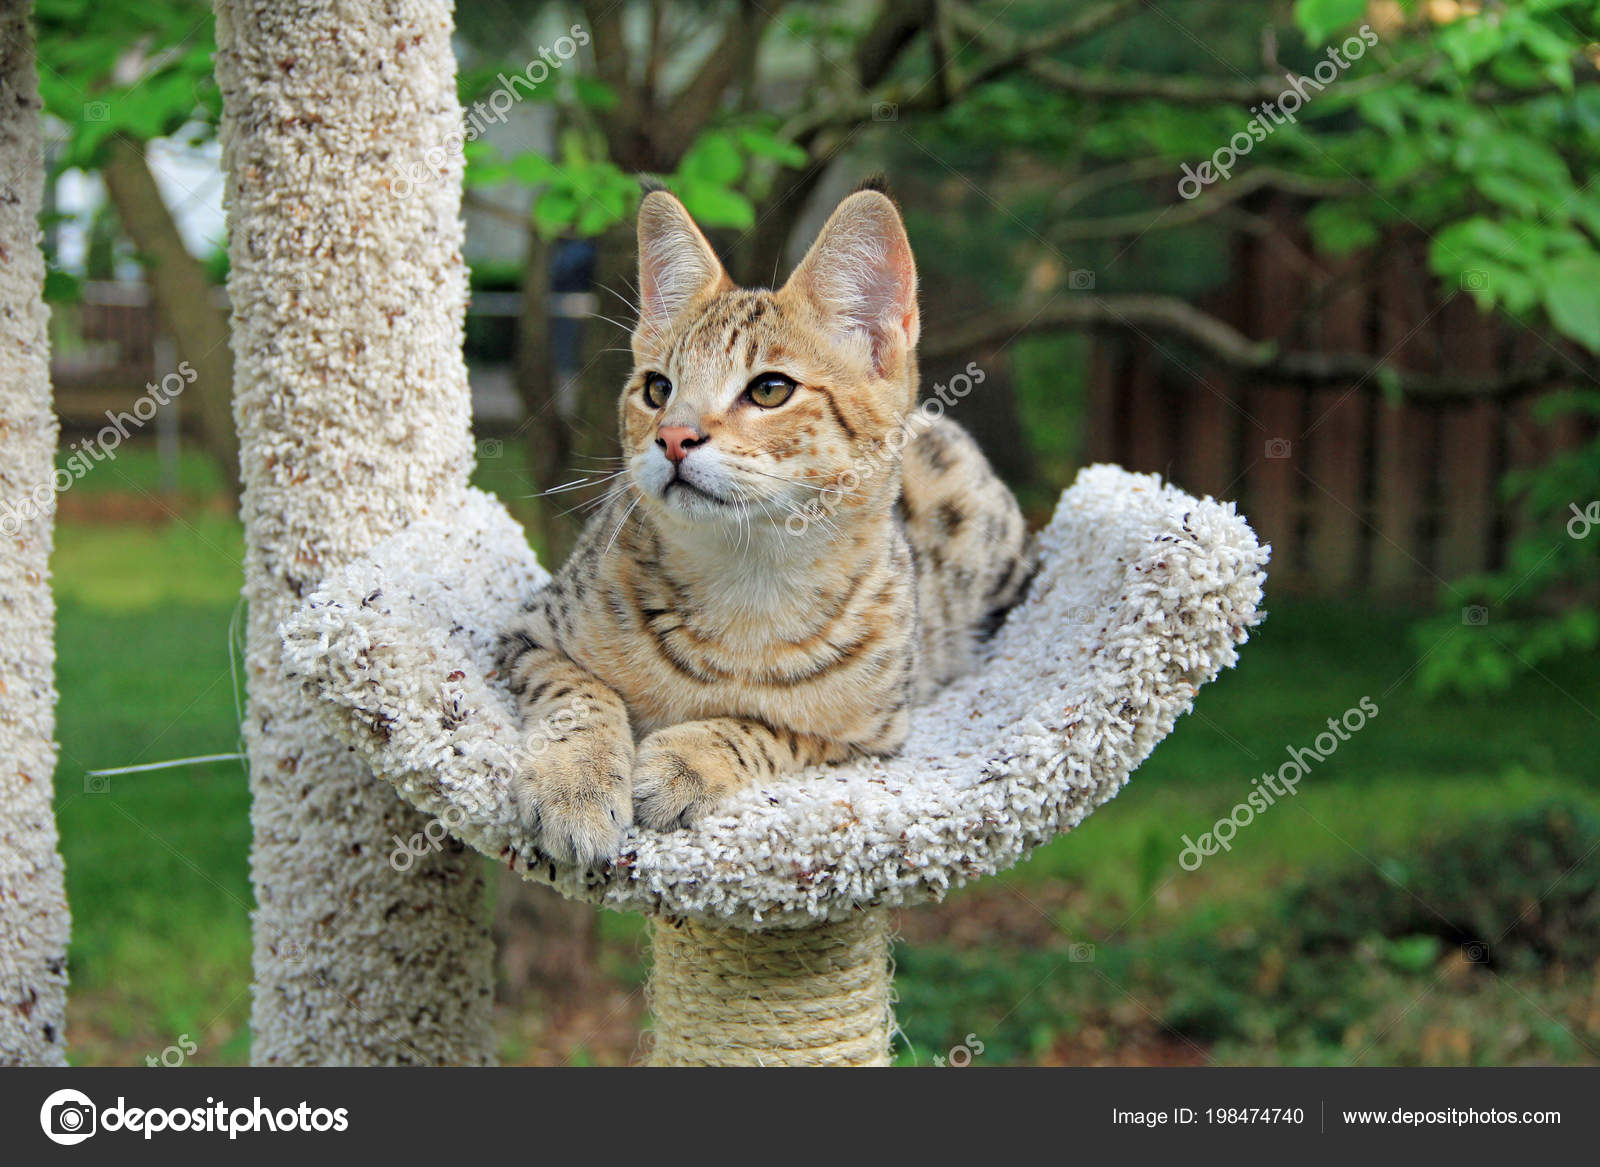 Savannah Cat Beautiful Spotted Striped Gold Colored Serval